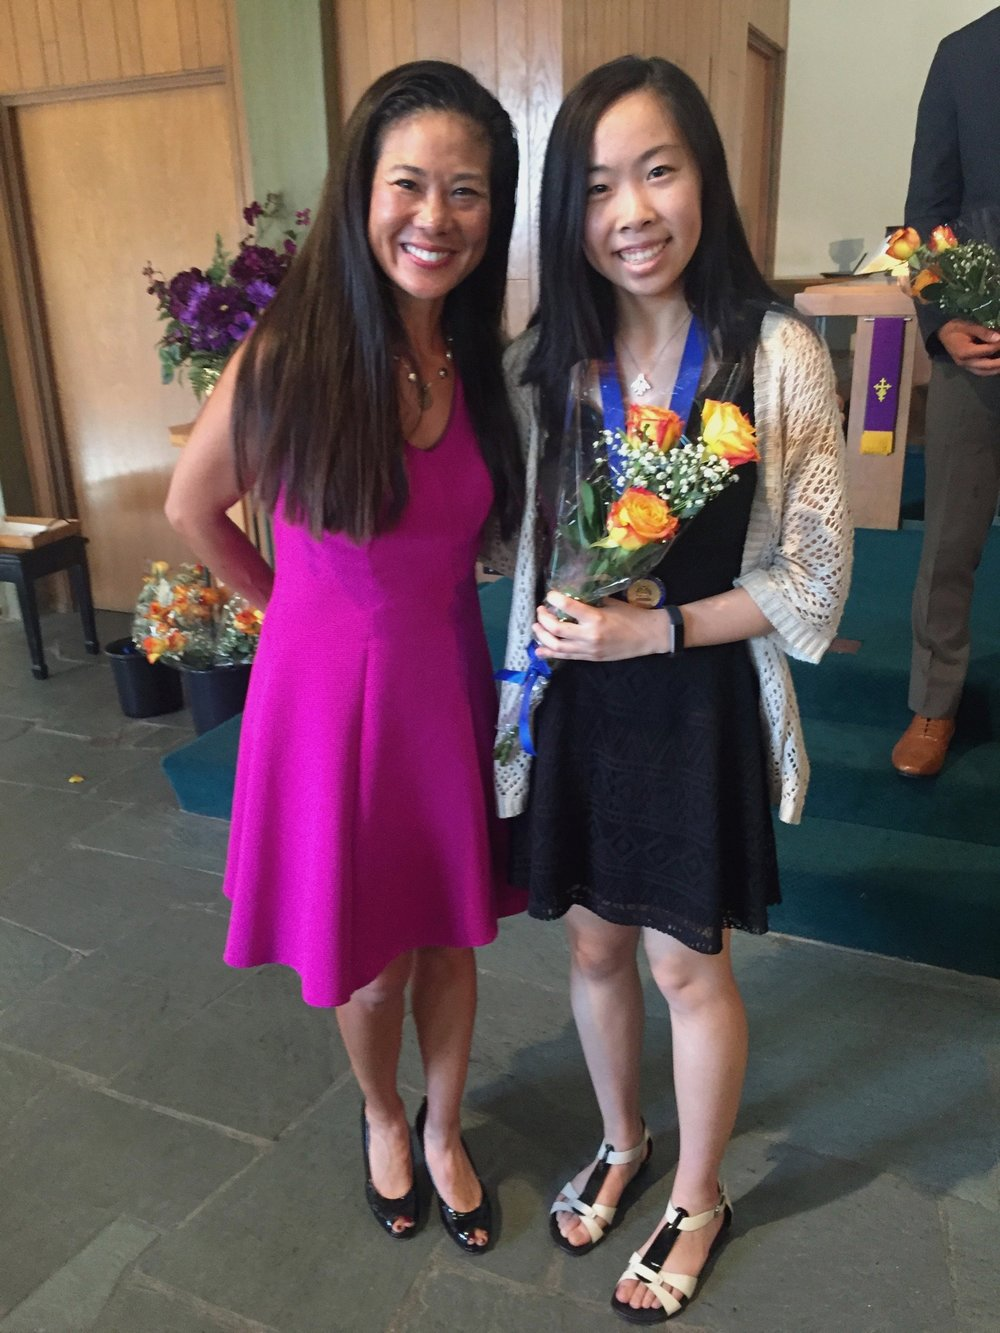 Michelle Lu, Winner of the Joanna hodges memorial award 2017 and student for 12 years at wenjen piano studios